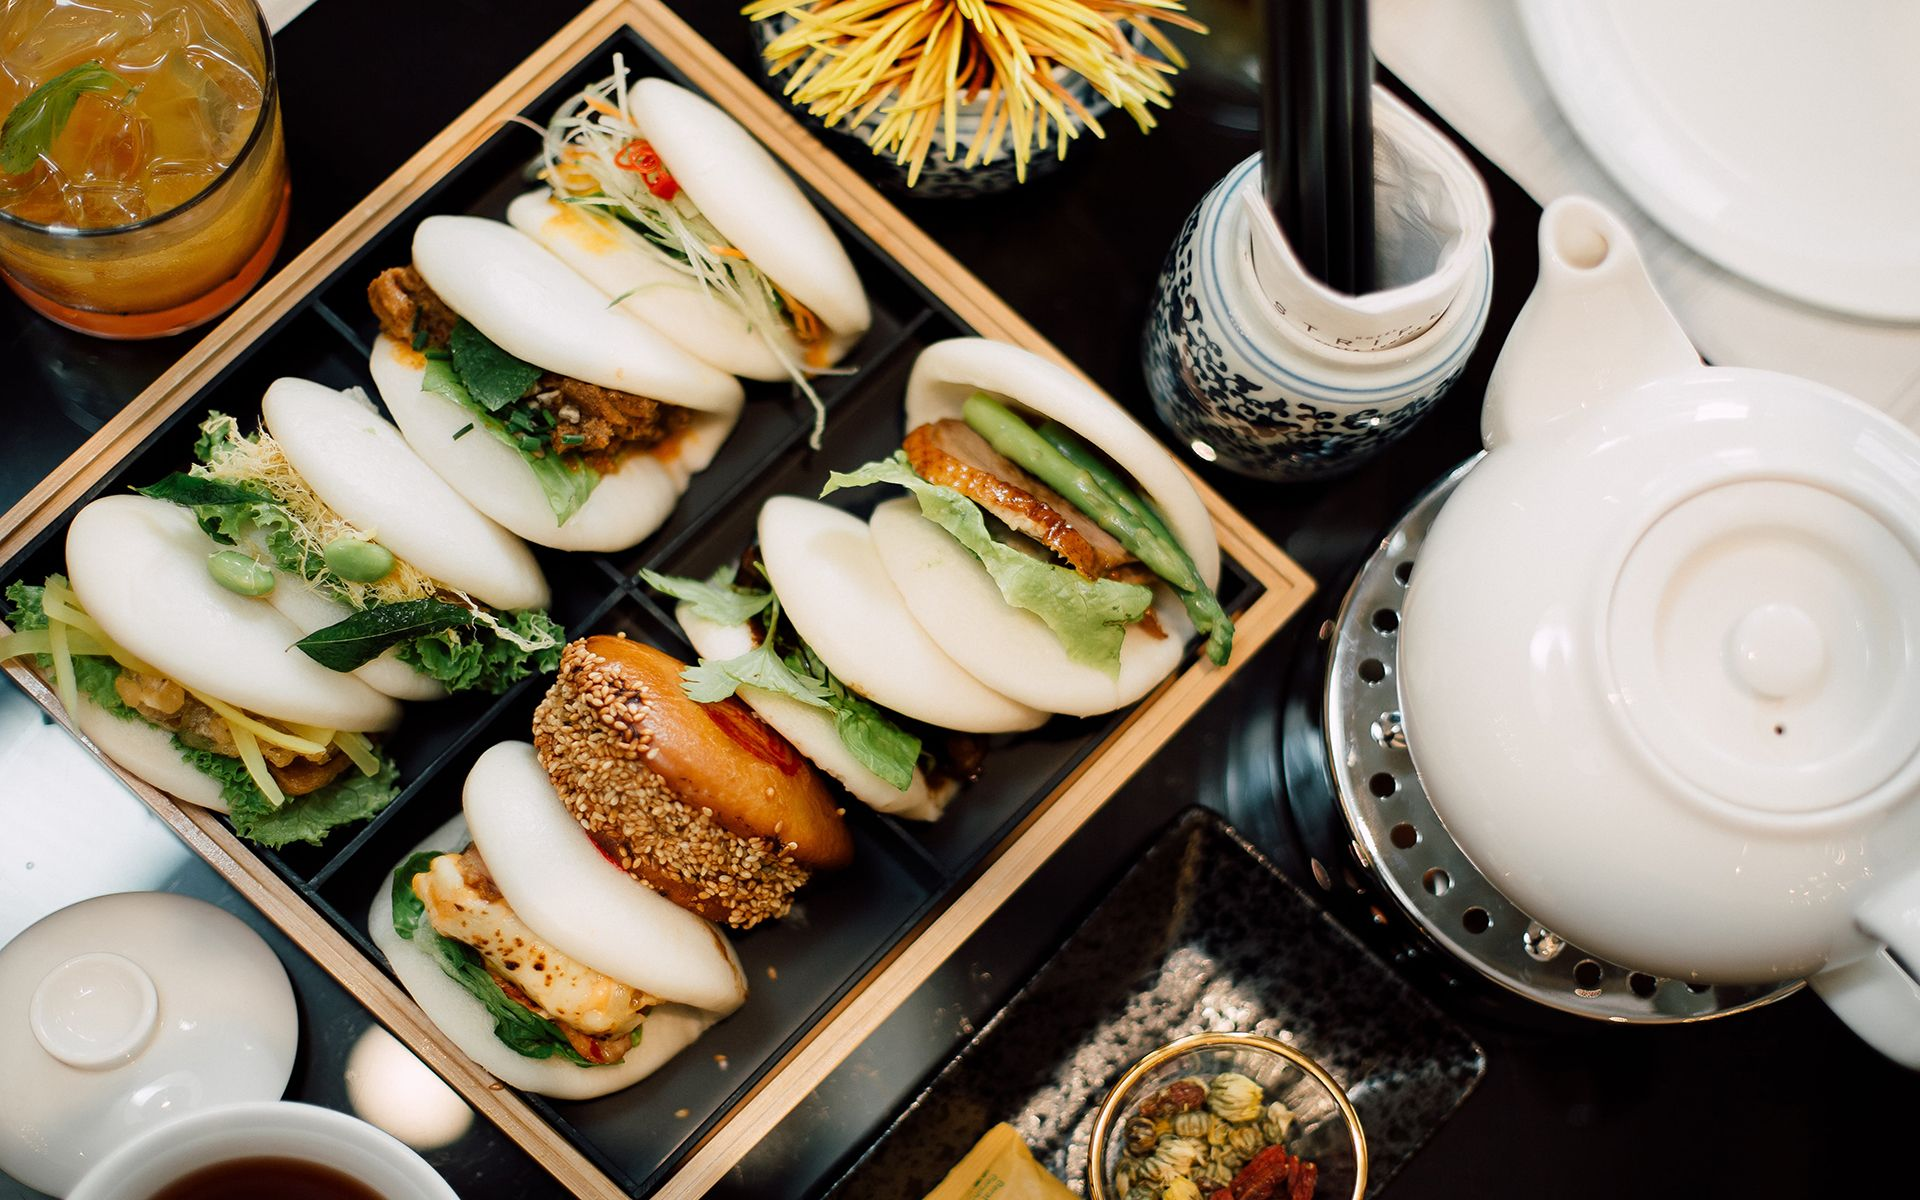 Brasserie 25 At Hotel Stripes Introduces A 'Bao-Tea-Ful' Afternoon Tea